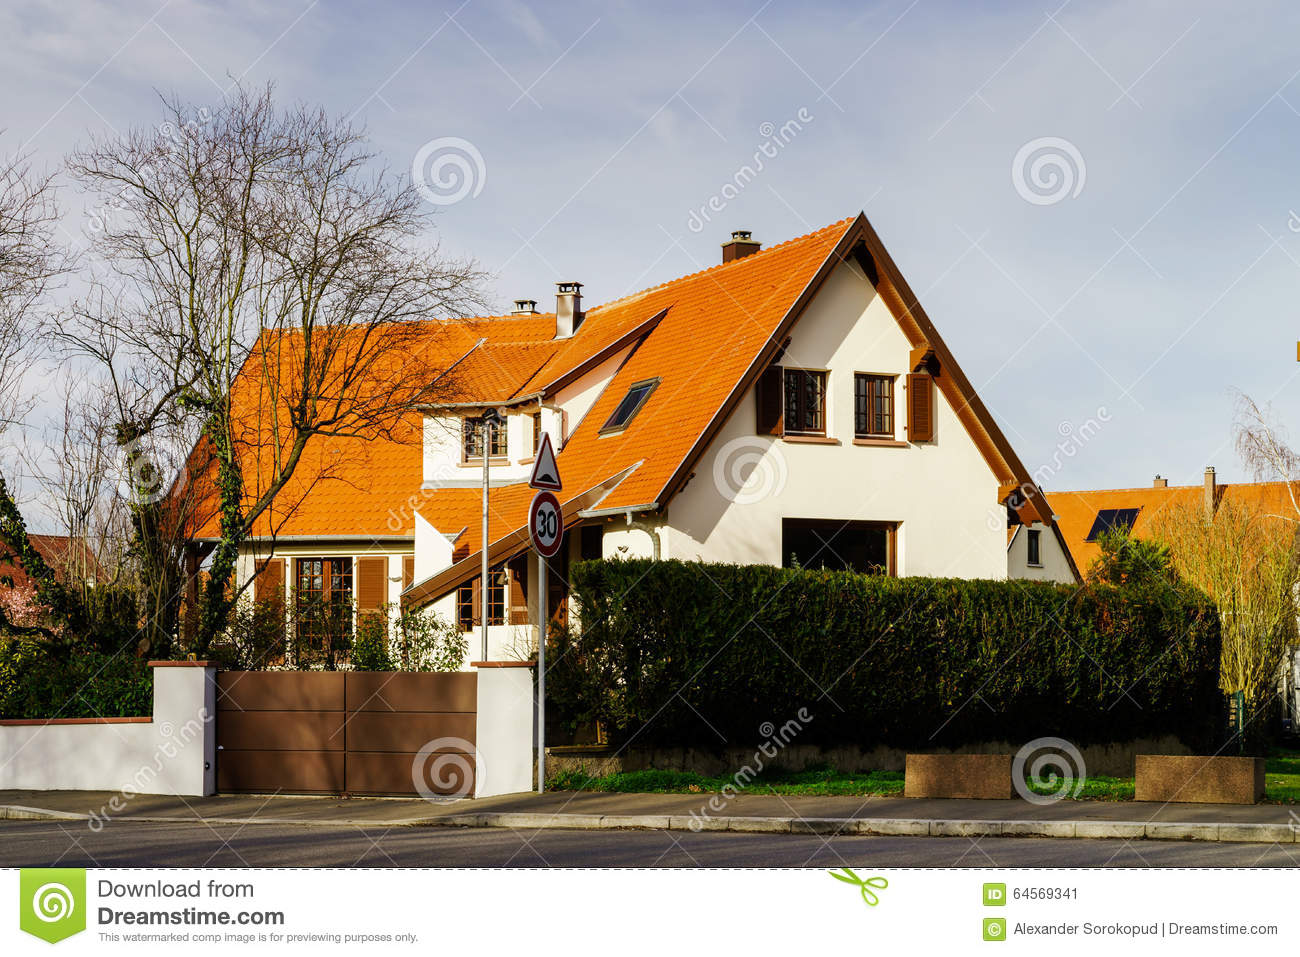 xterior View Of New Modern House In ountryside Stock Photo ... - ^